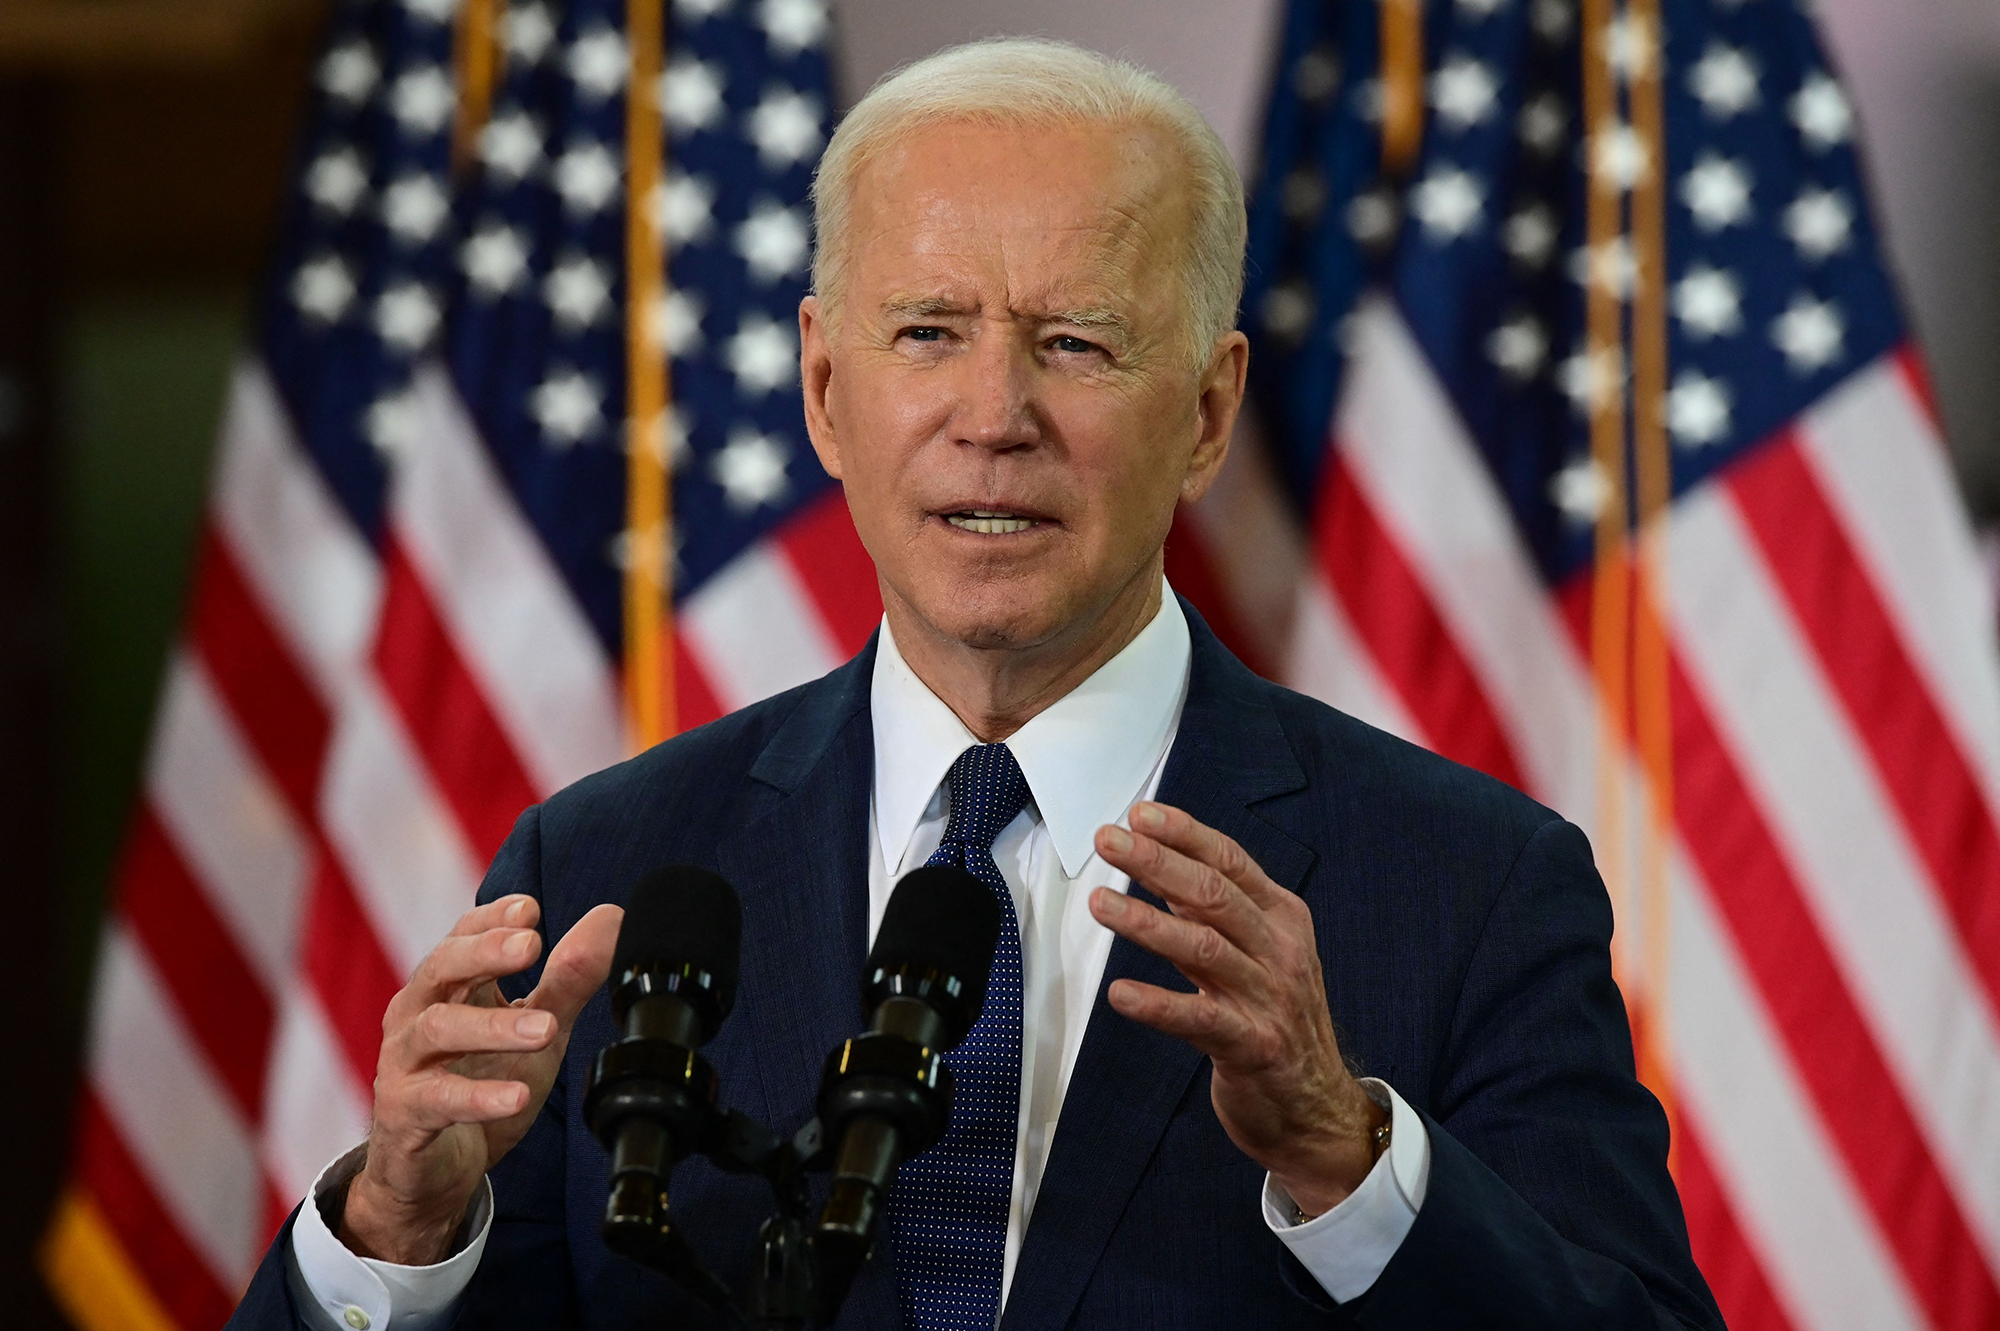 Biden administration stands down on policing commission, focuses on legislative route instead